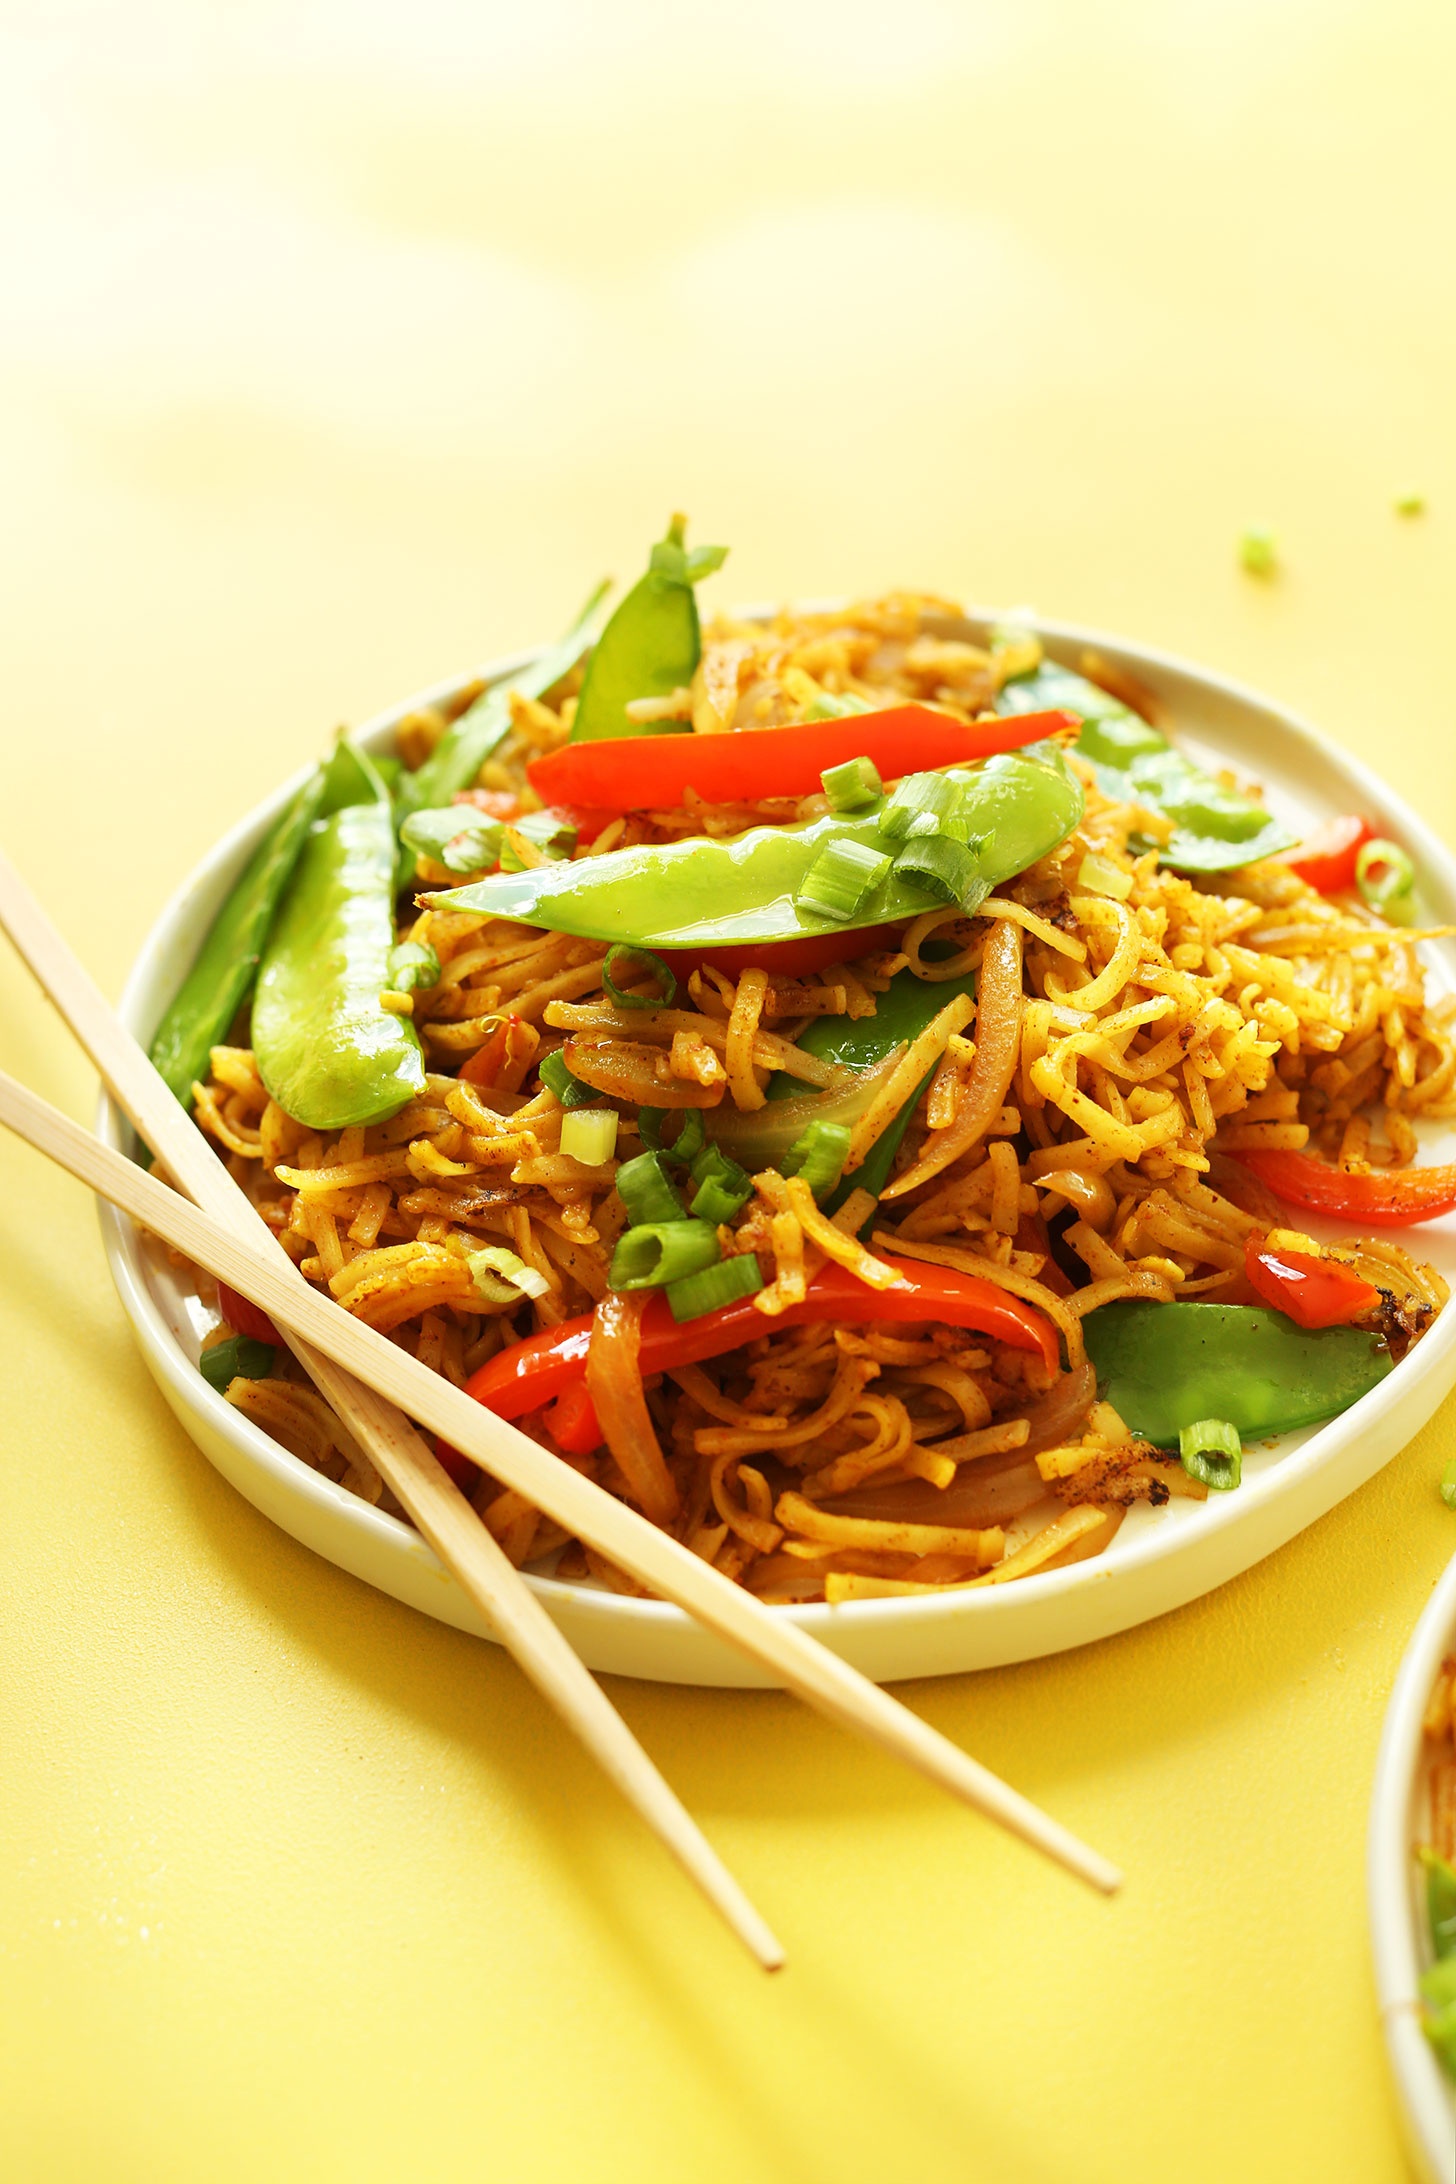 Vegan singapore noodles minimalist baker recipes easy vegan singapore noodles 10 ingredients simple ingredients so flavorful vegan forumfinder